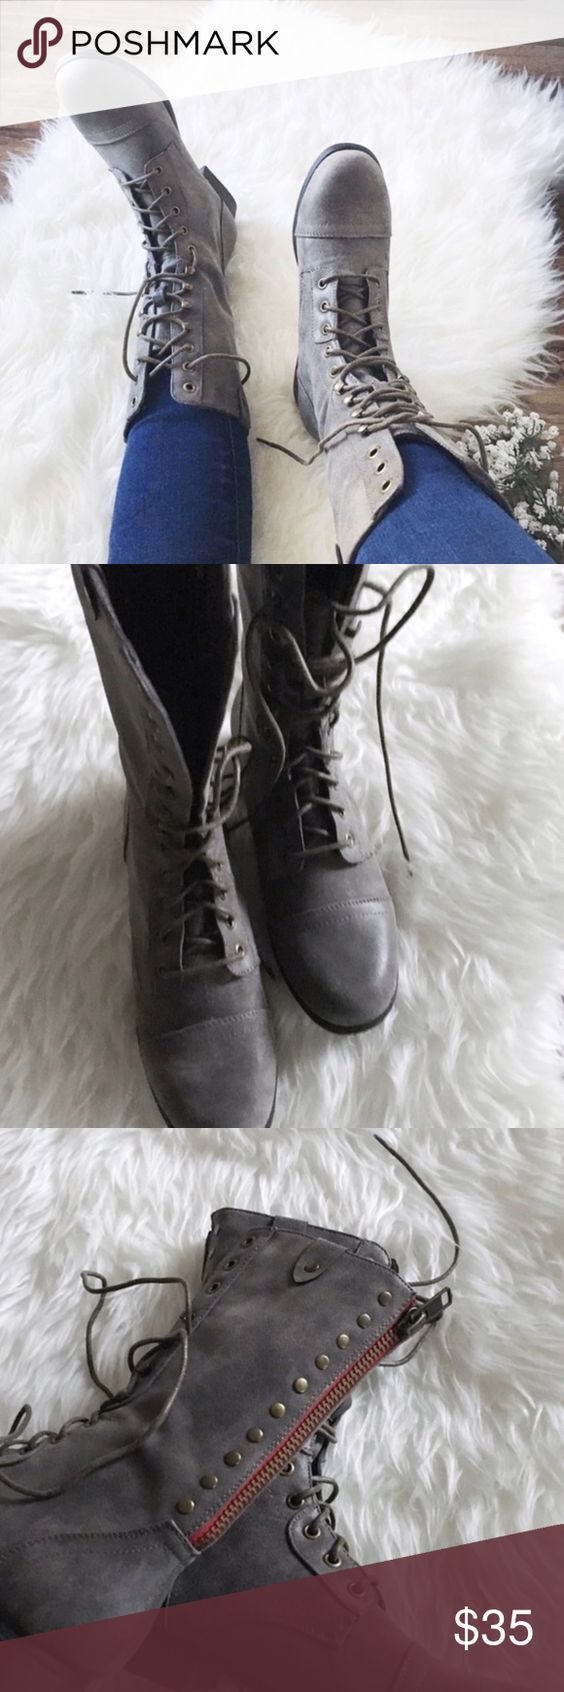 Nwob//madden girl • gray combat boots w/red zipper | Girls' shoes ...